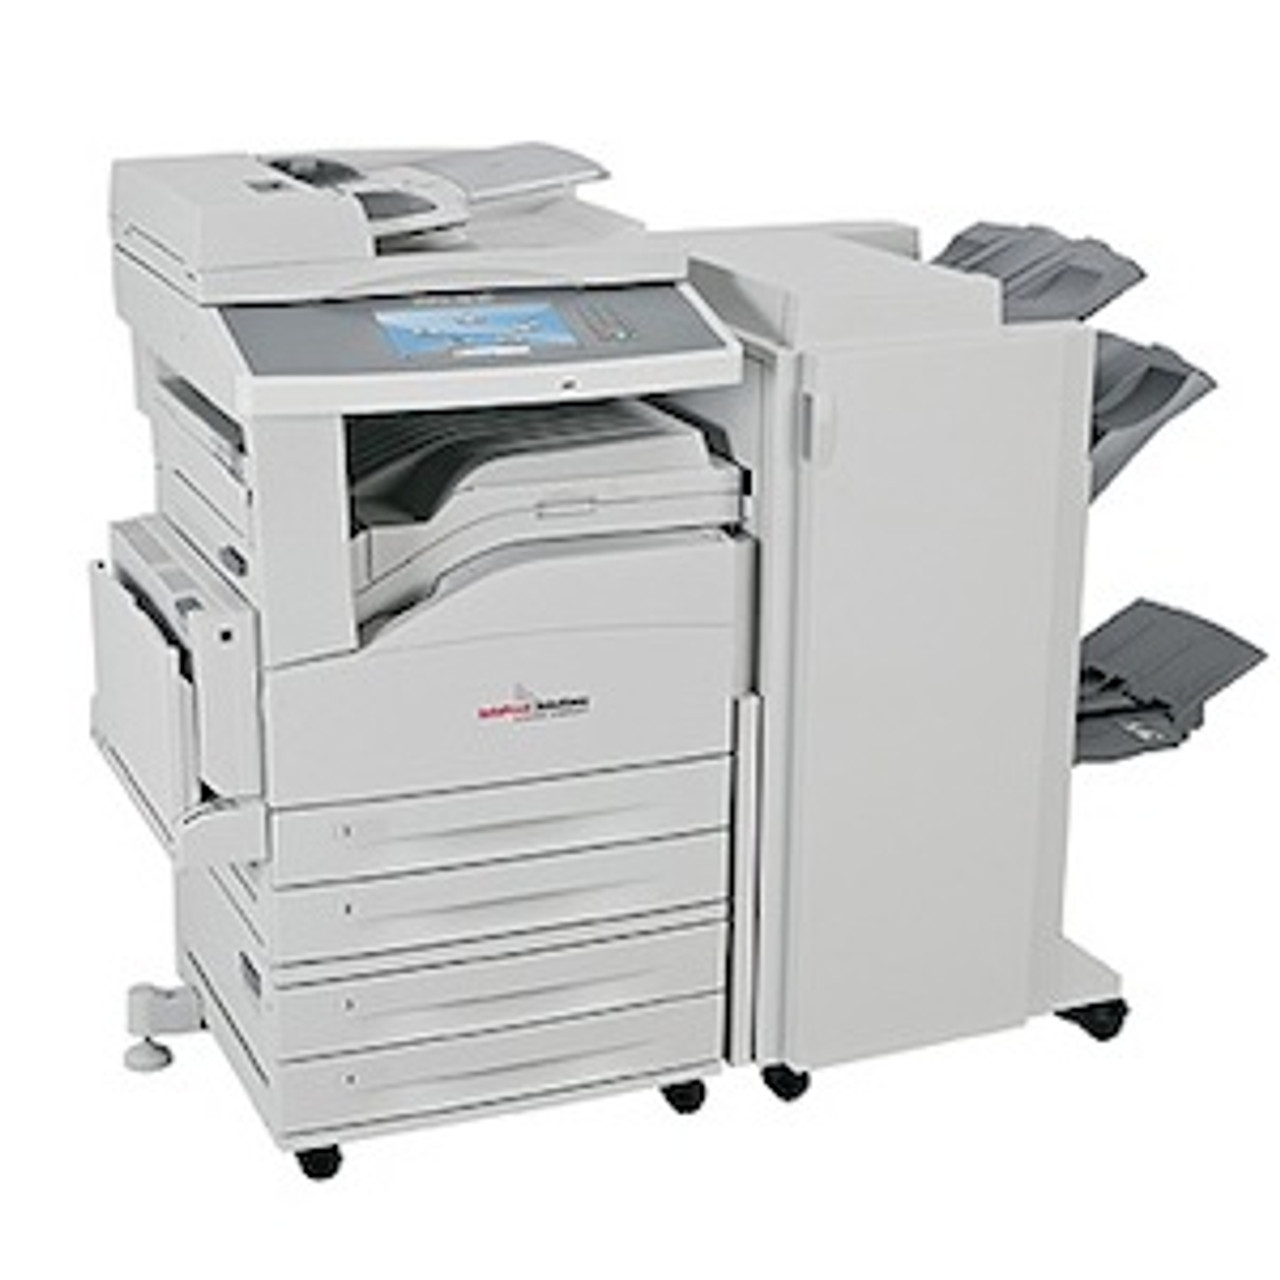 IBM Infoprint 1580 MFP - Printer/copier/fax/scanner